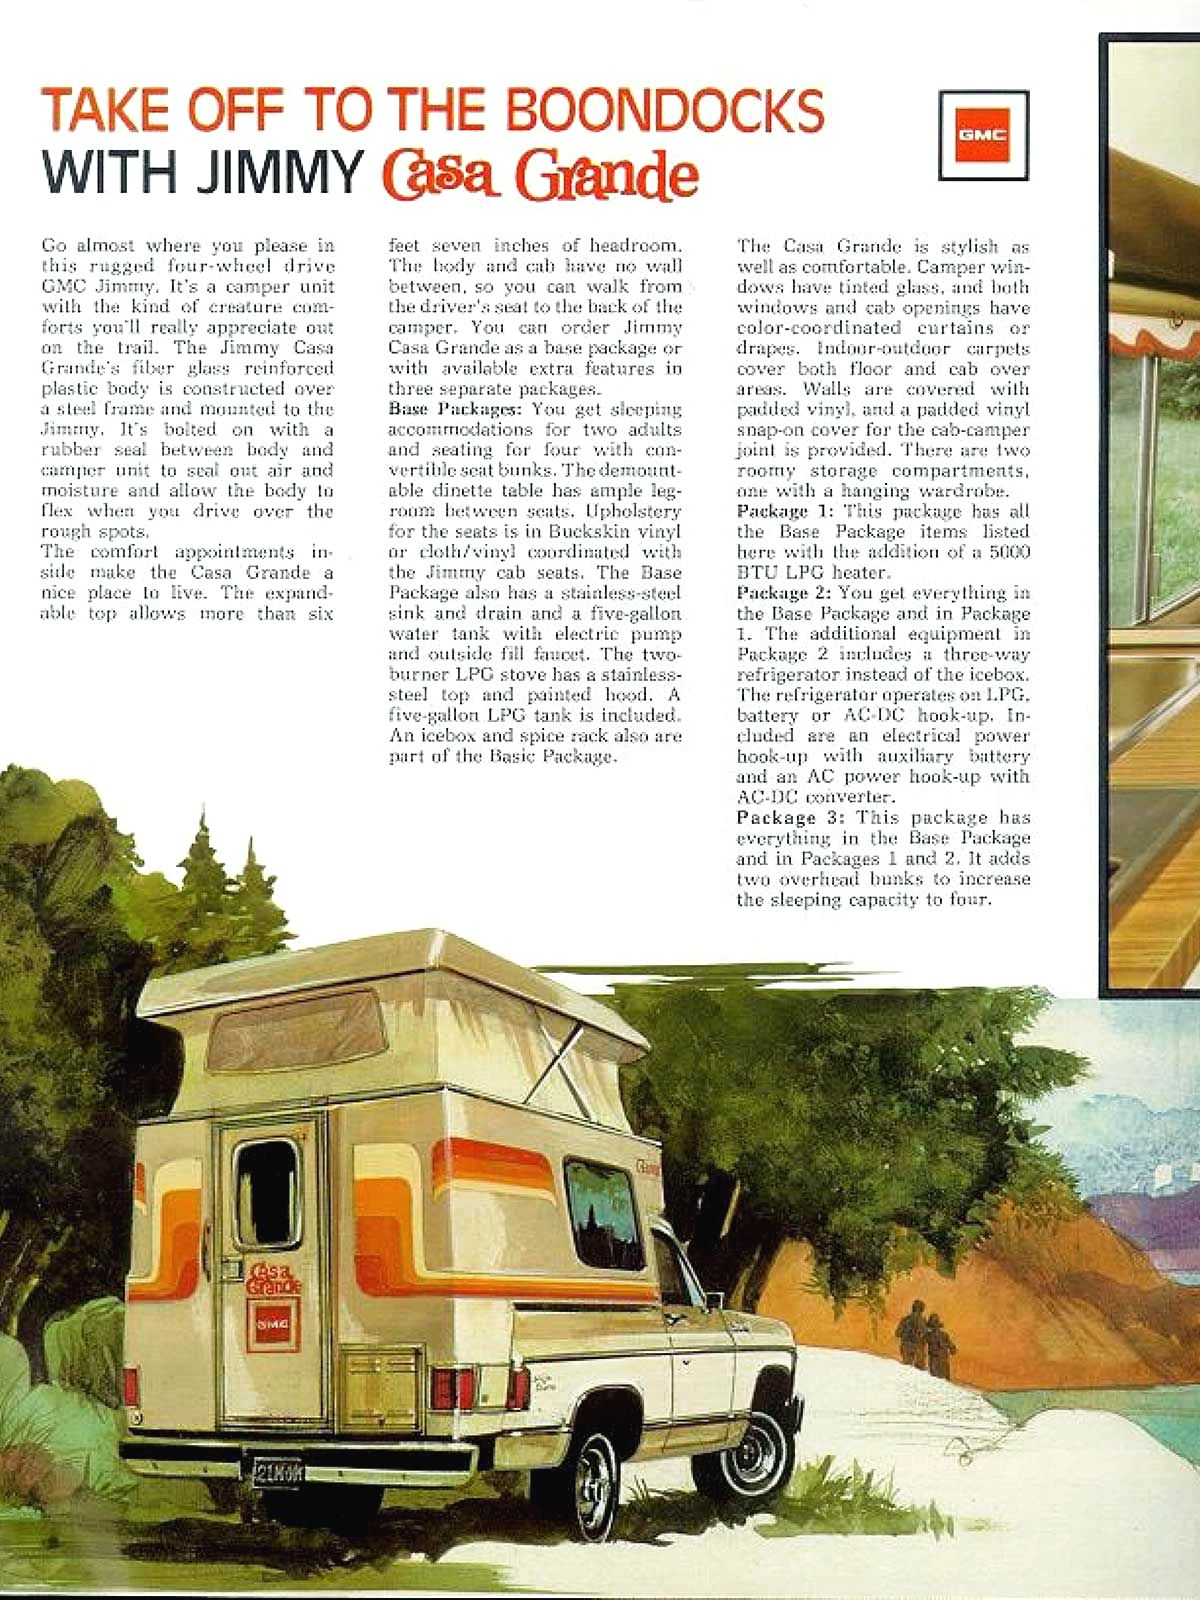 1976 Gmc Jimmy With Chalet Camper Gmc Chevrolet Trucks Chevrolet